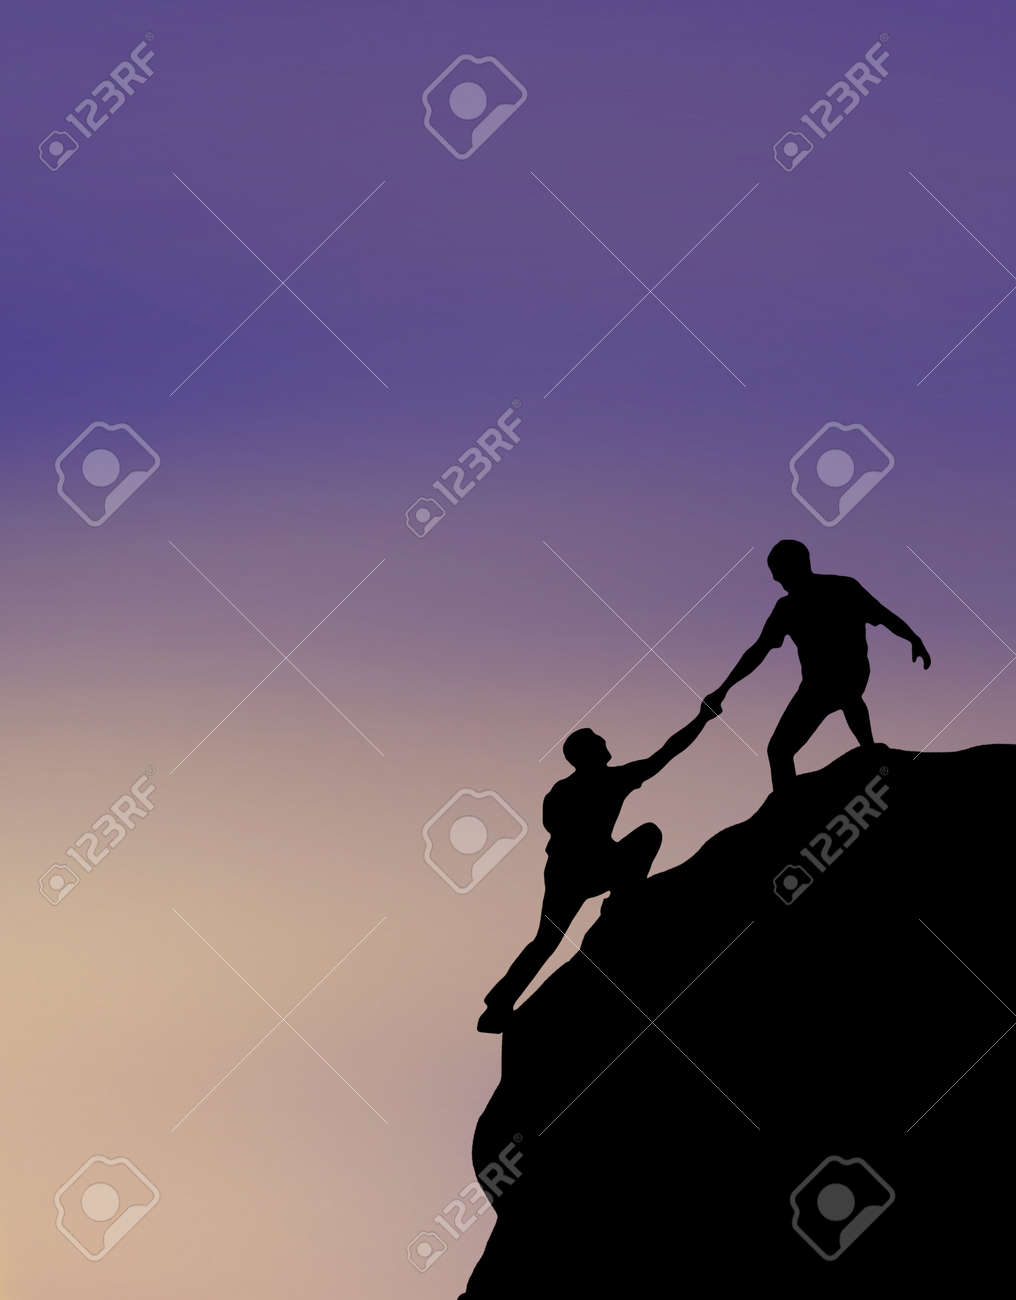 Hikers climbing on rock, giving hand and helping to climb - 158487125